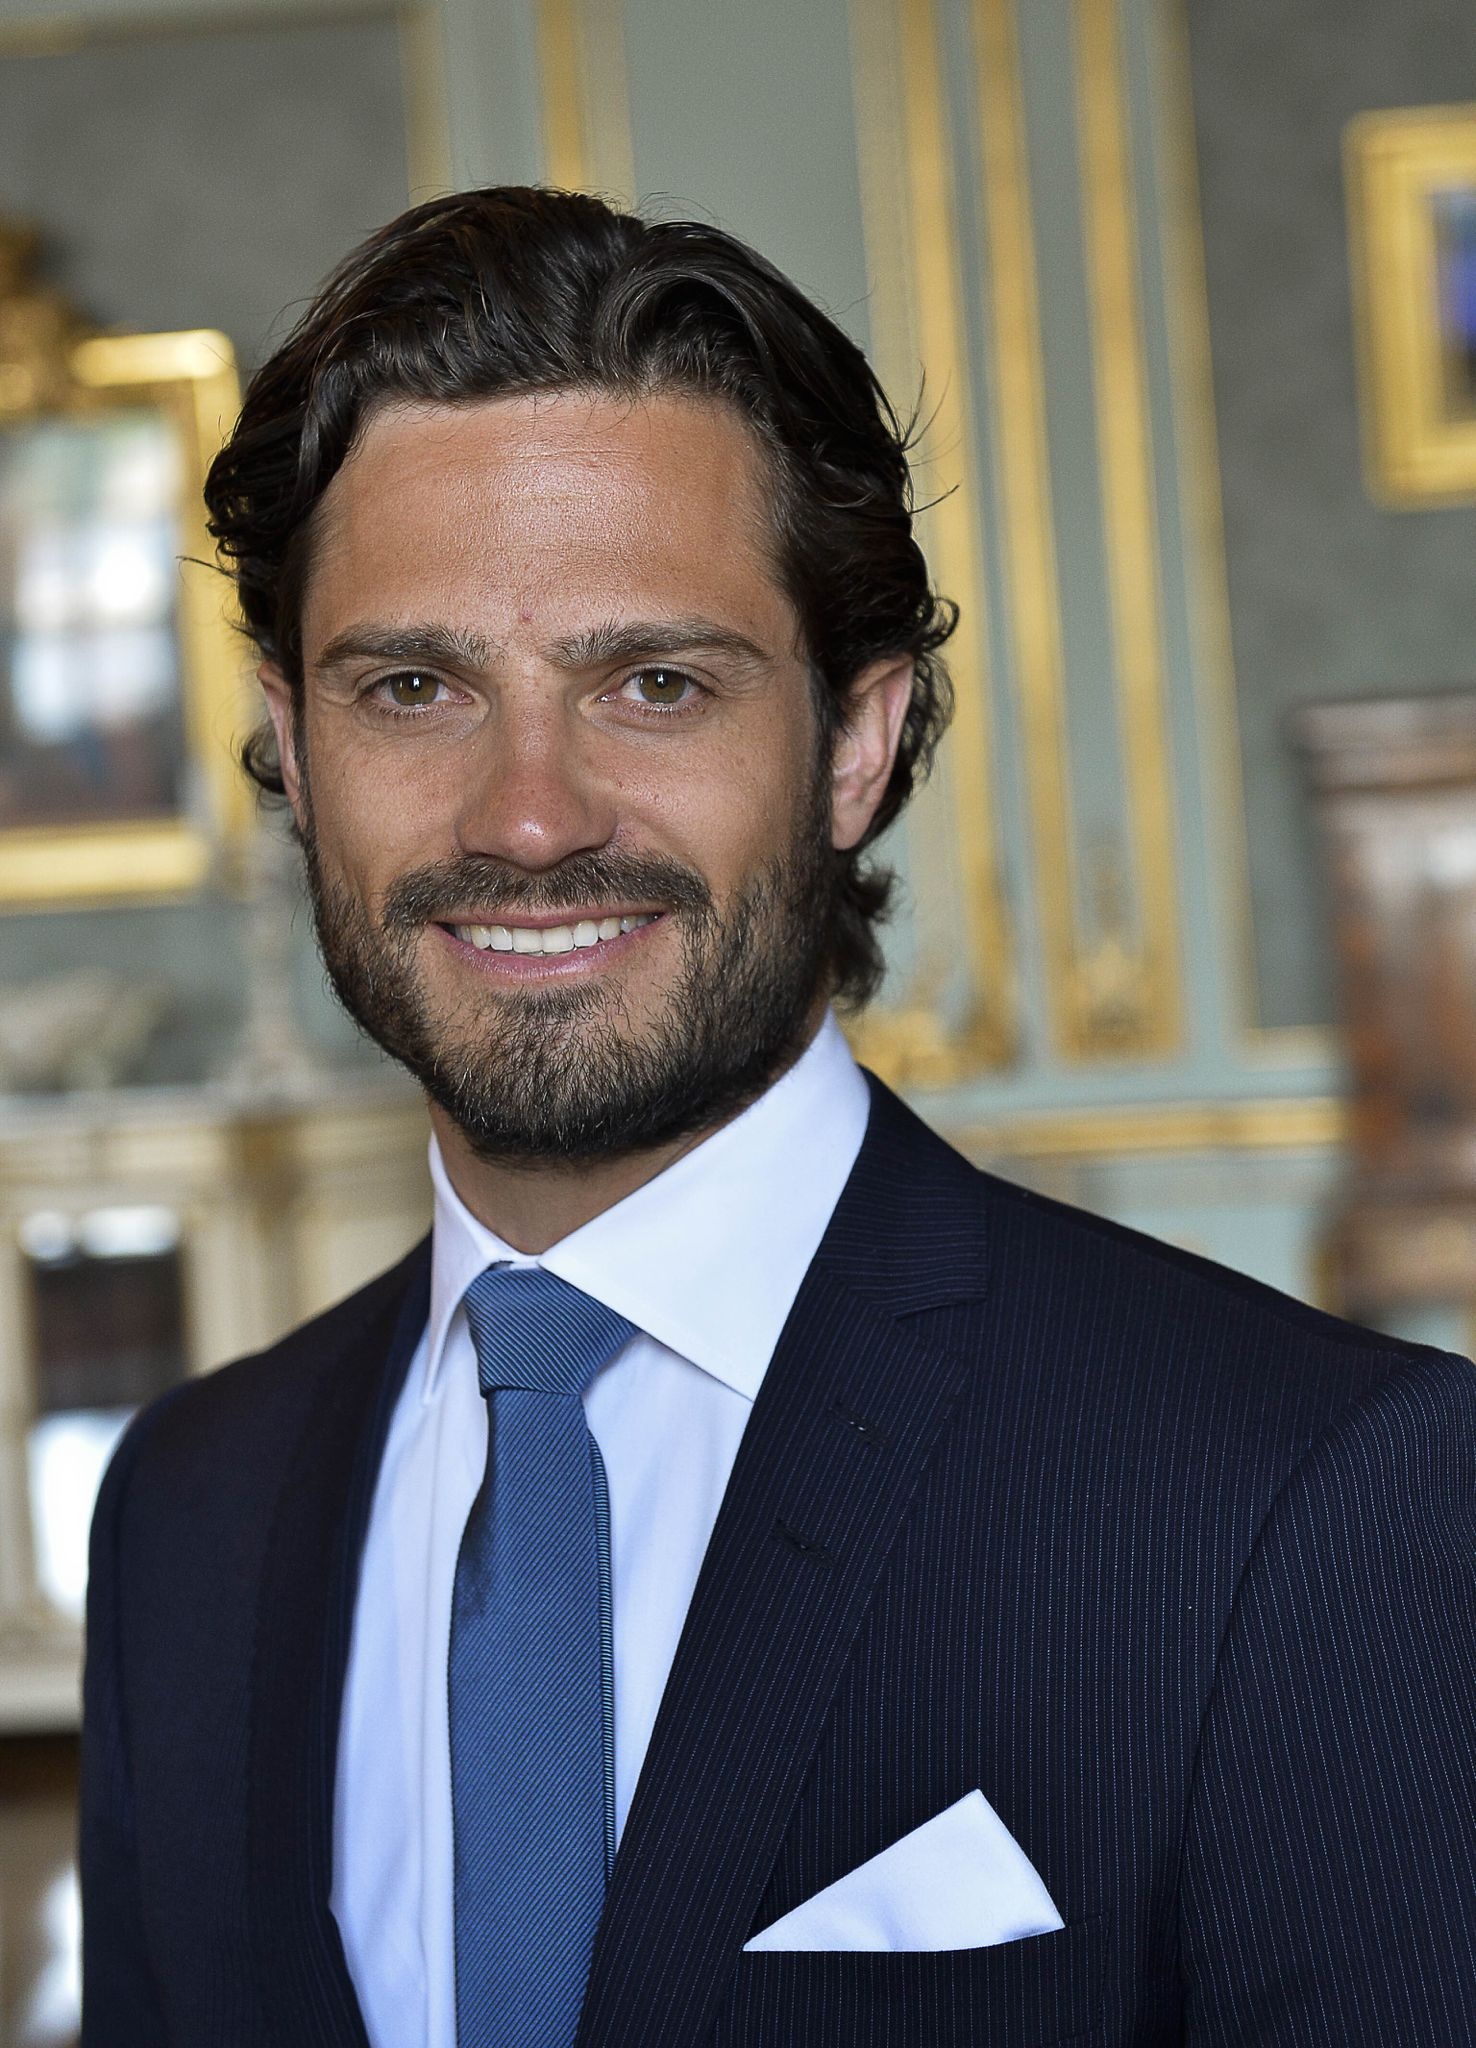 Sweden's hot prince Carl Philip to become a father for the ...